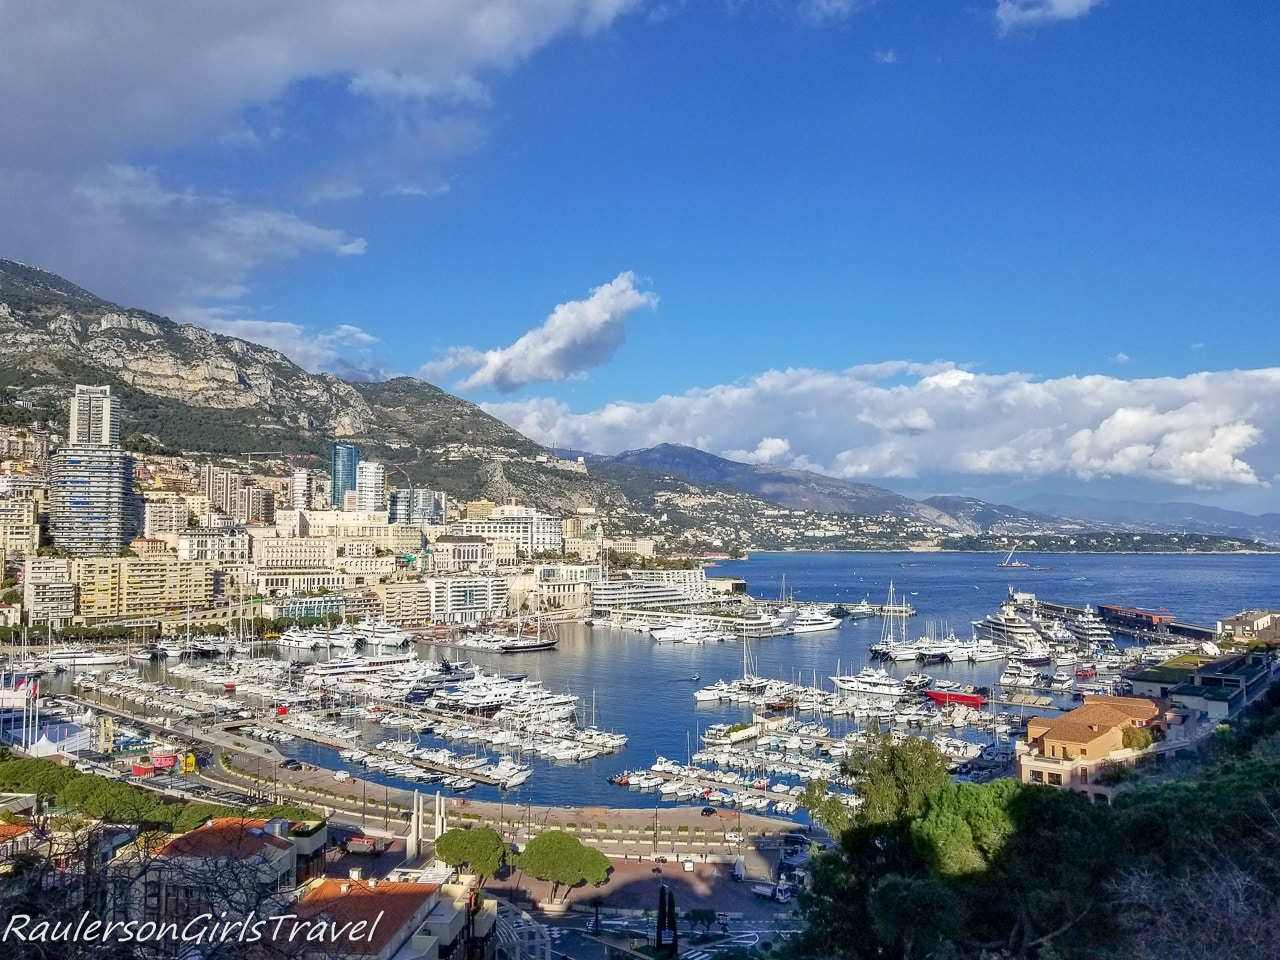 Port Hercule - Monte Carlo Harbor